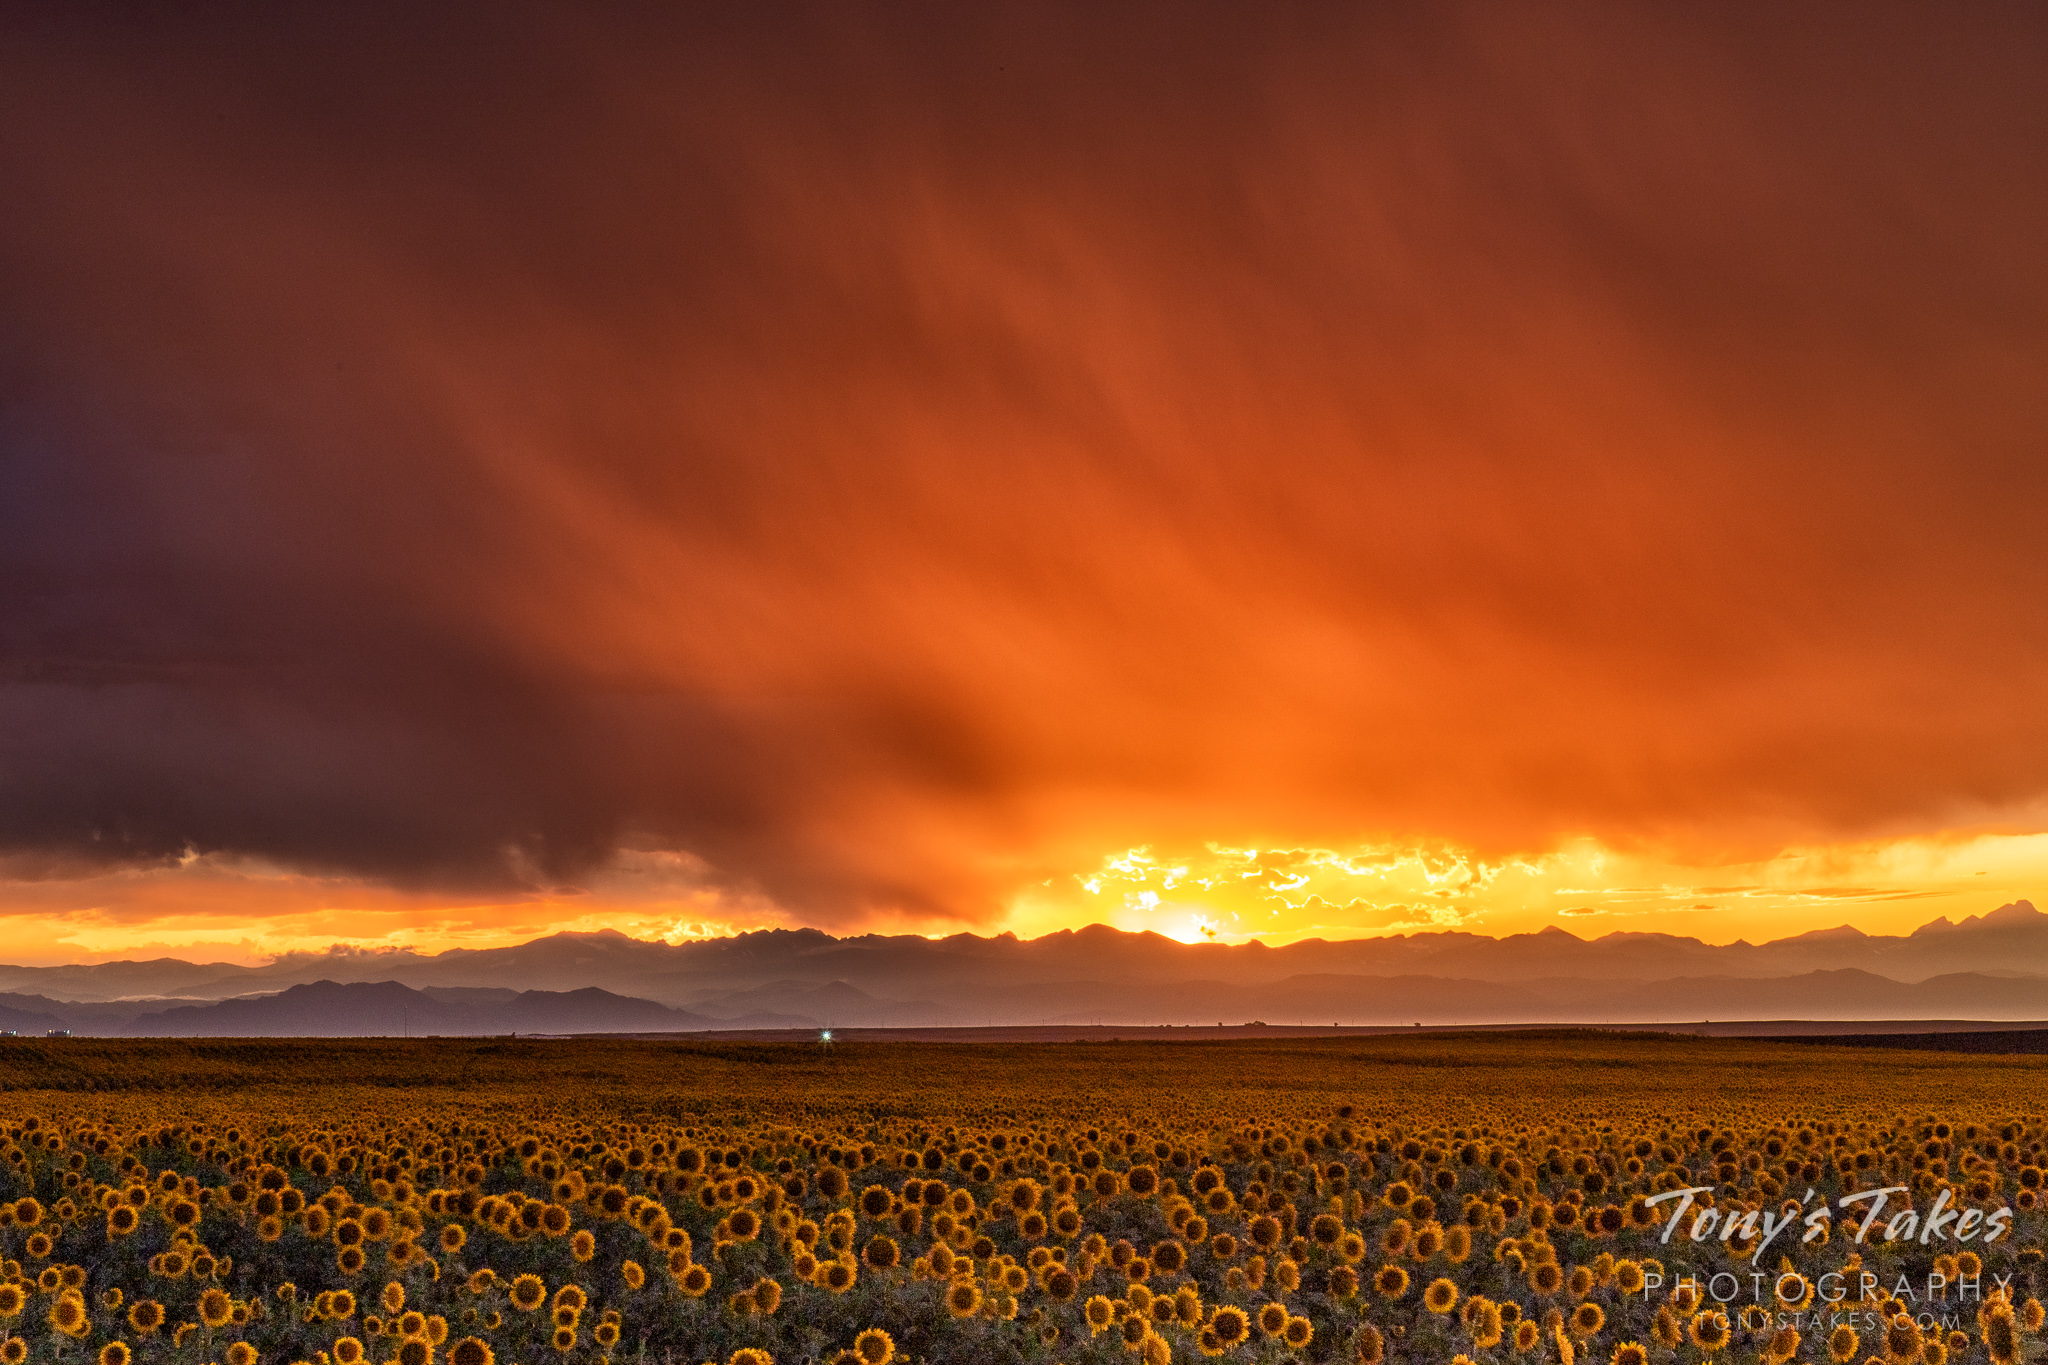 Blooming sunflowers lie below a gorgeous, stormy sunset with the Rocky Mountains in the distance. (© Tony's Takes)